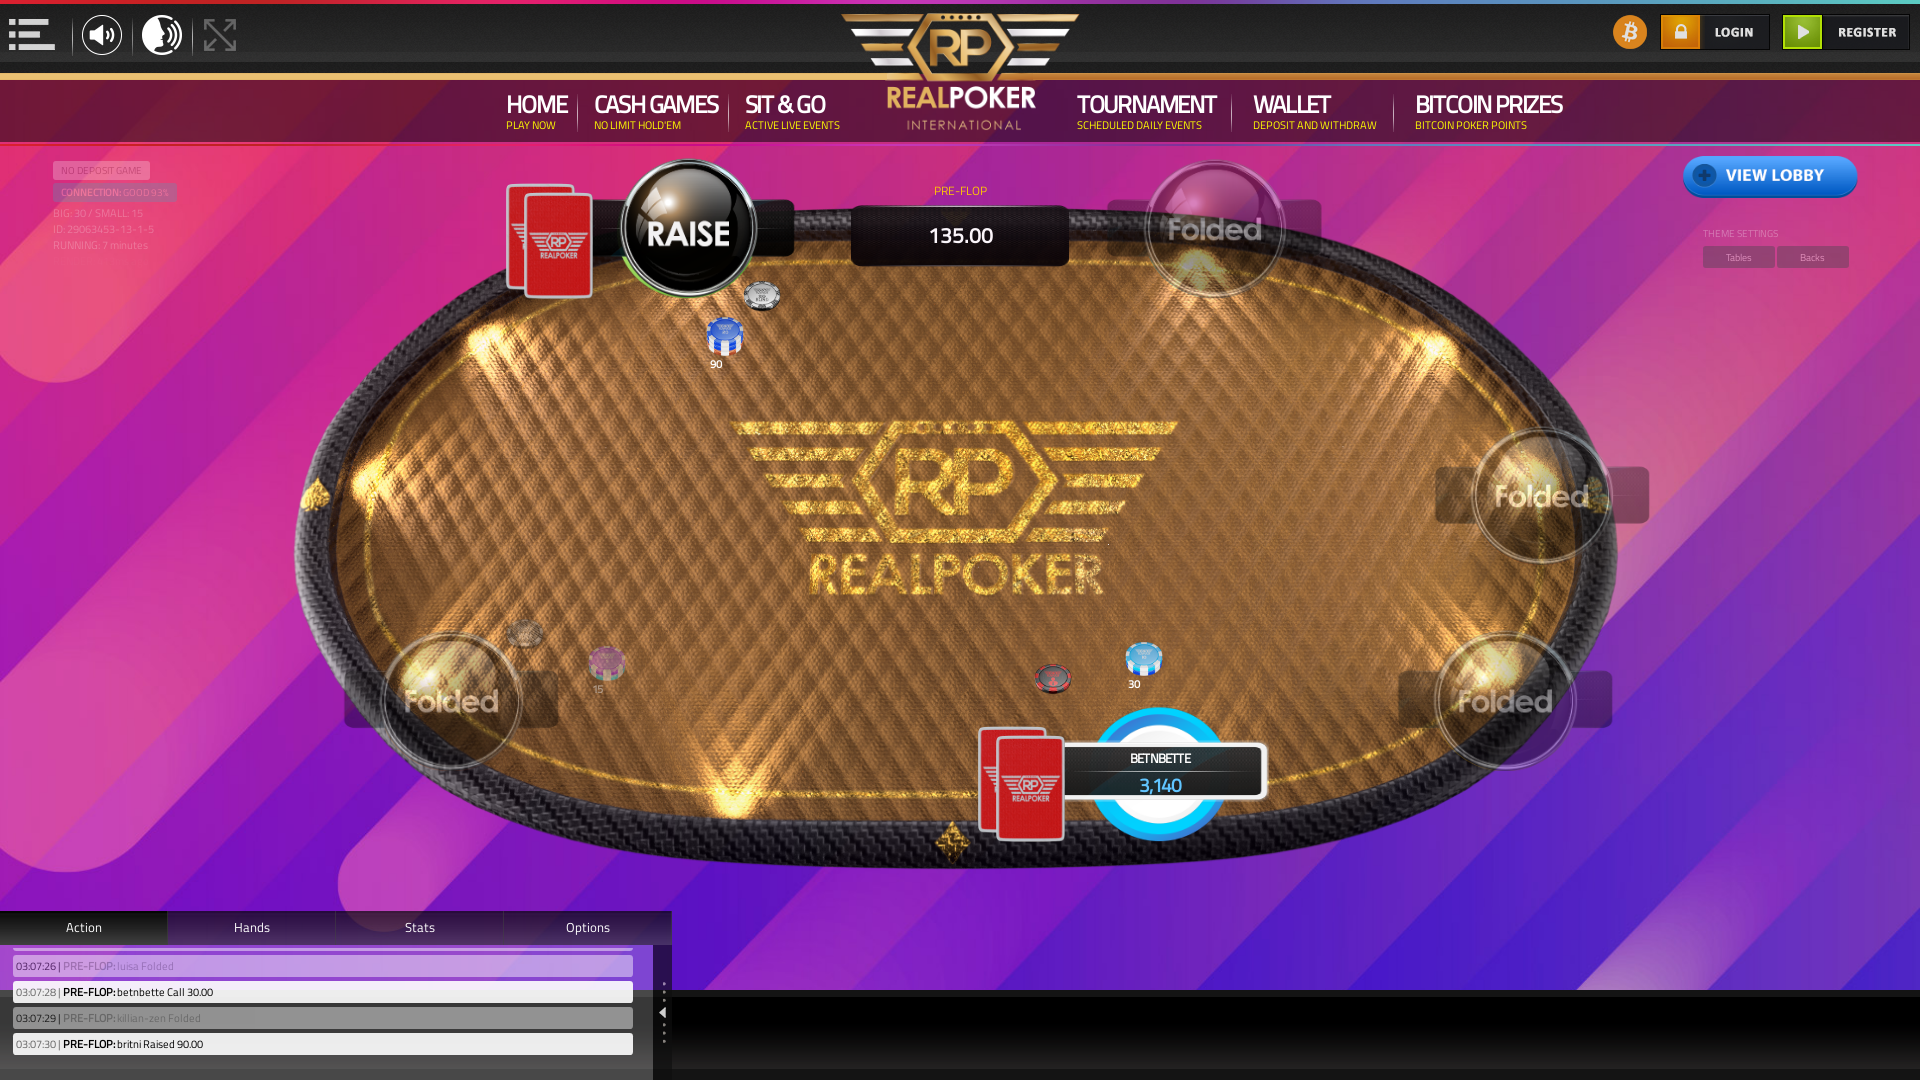 Africa Casino Bitcoin Poker 10 Player